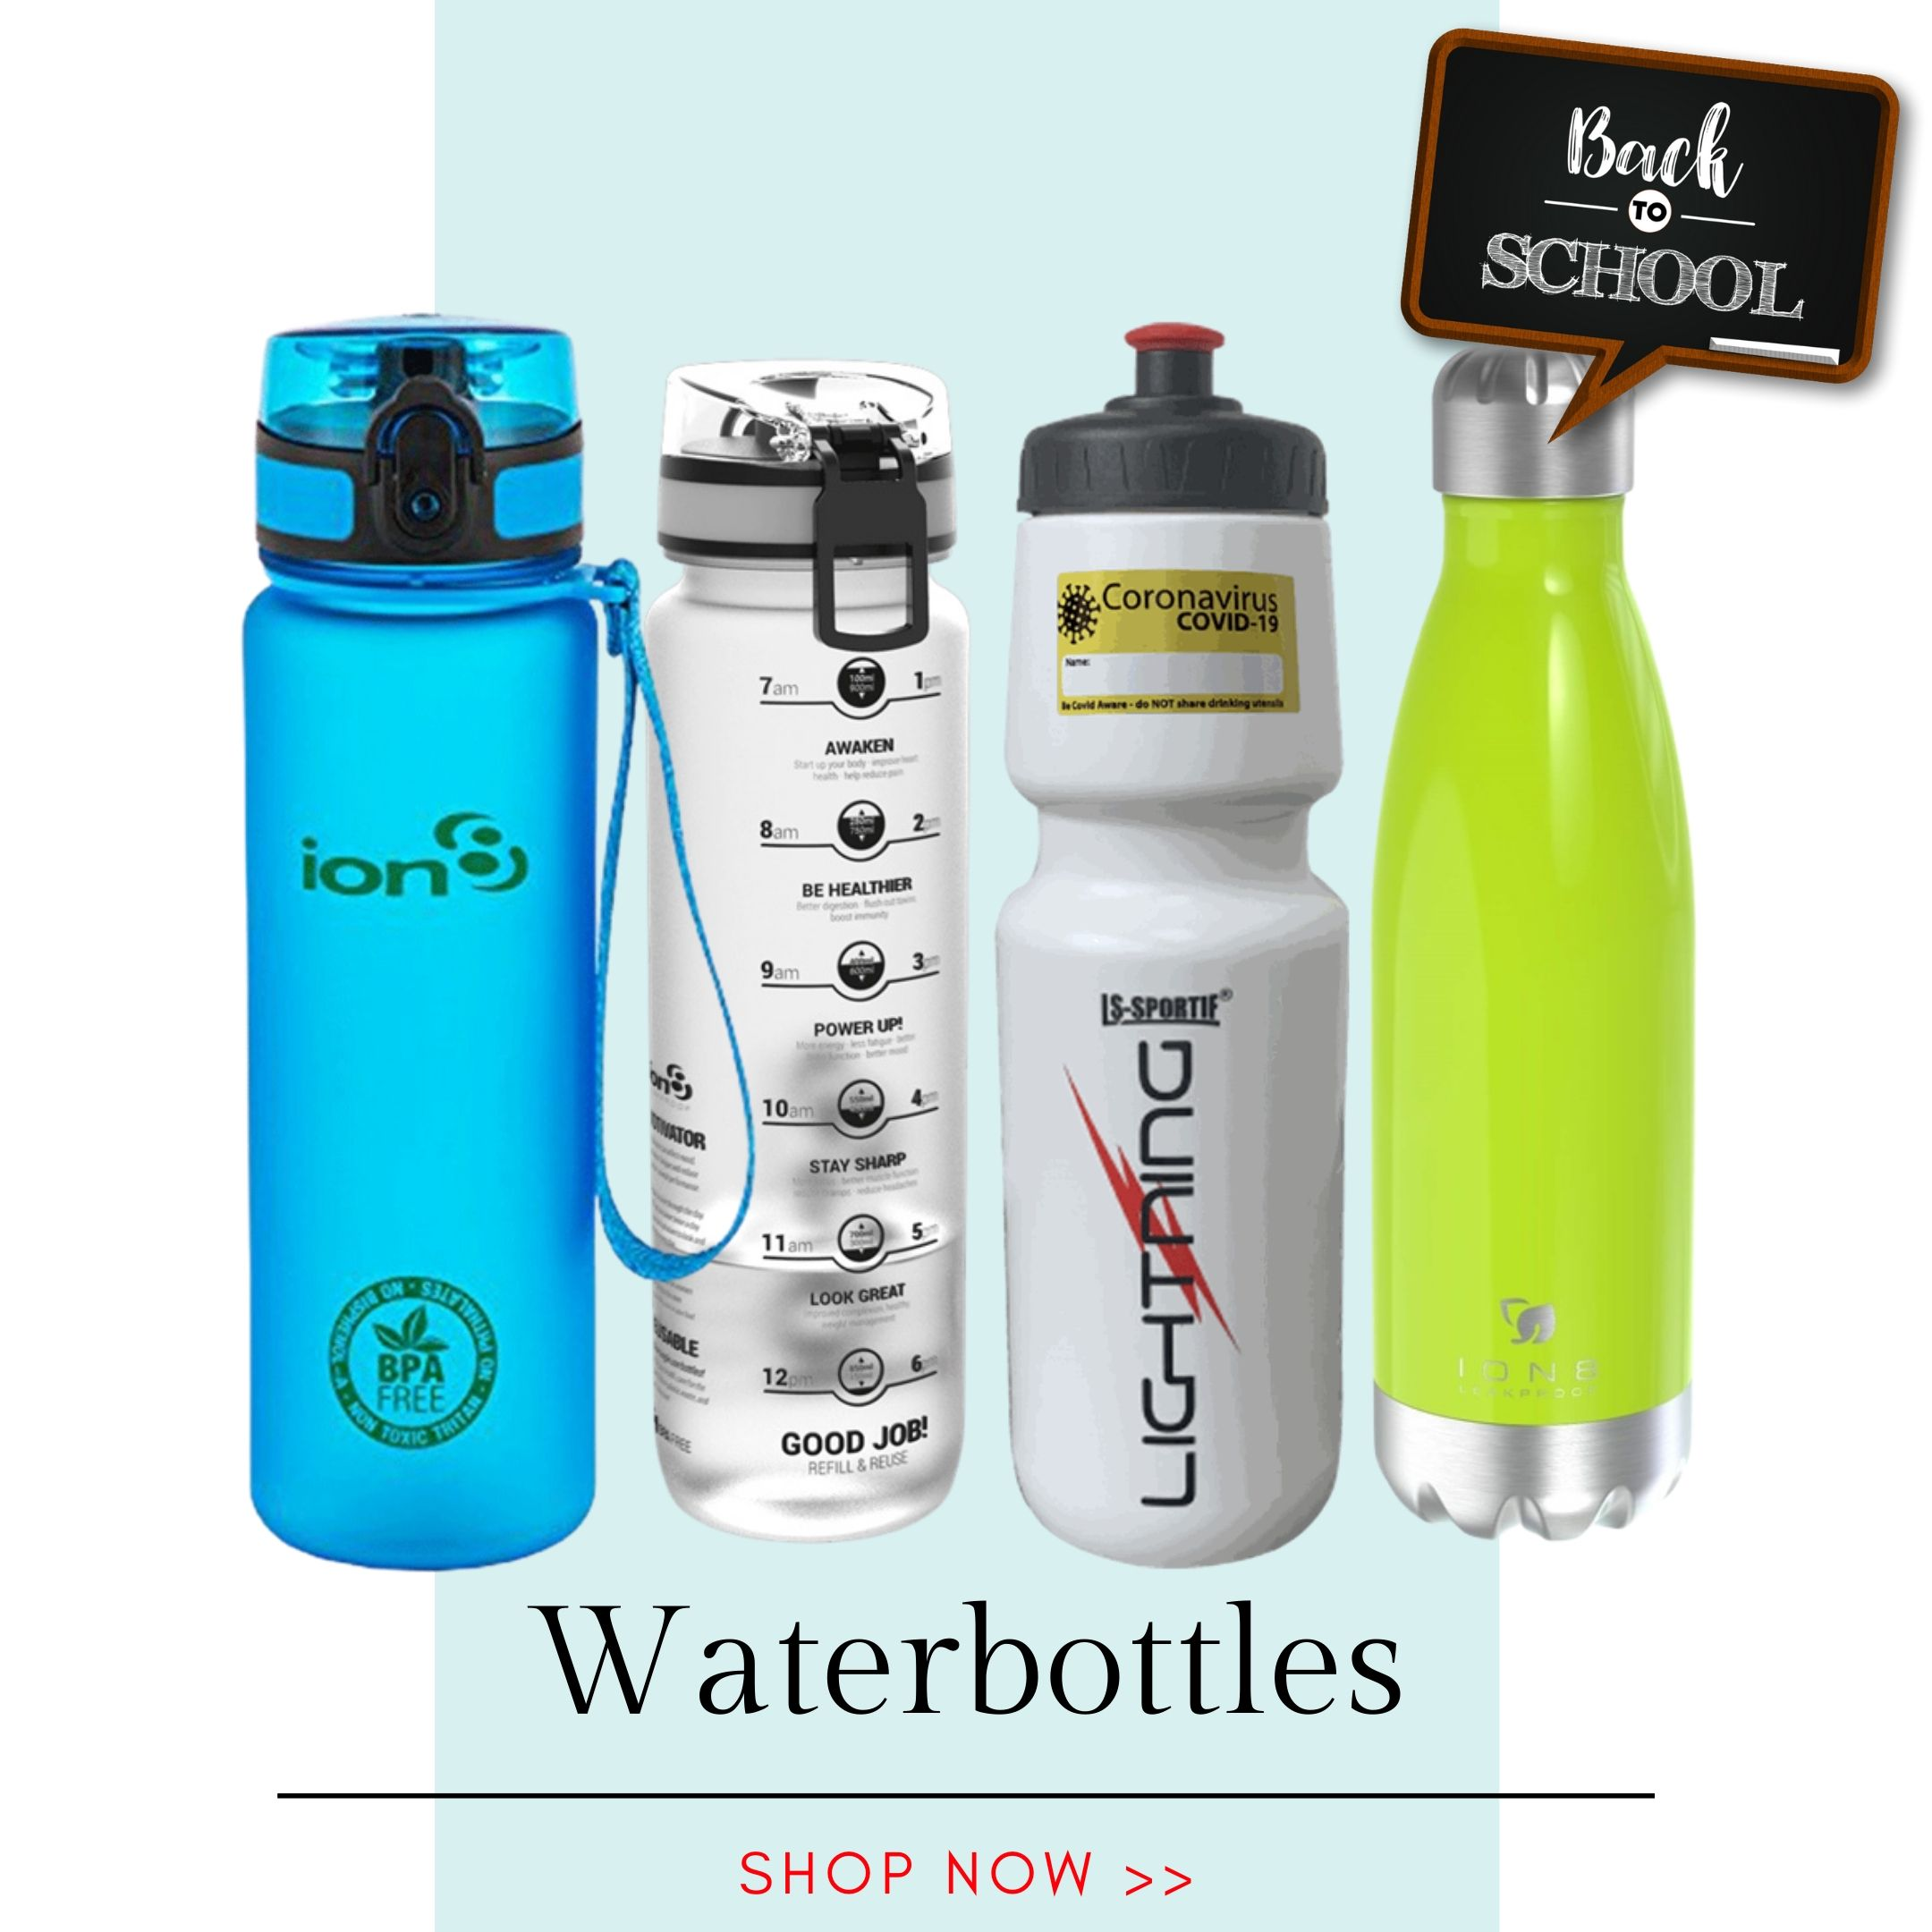 Back to School - Waterbottle